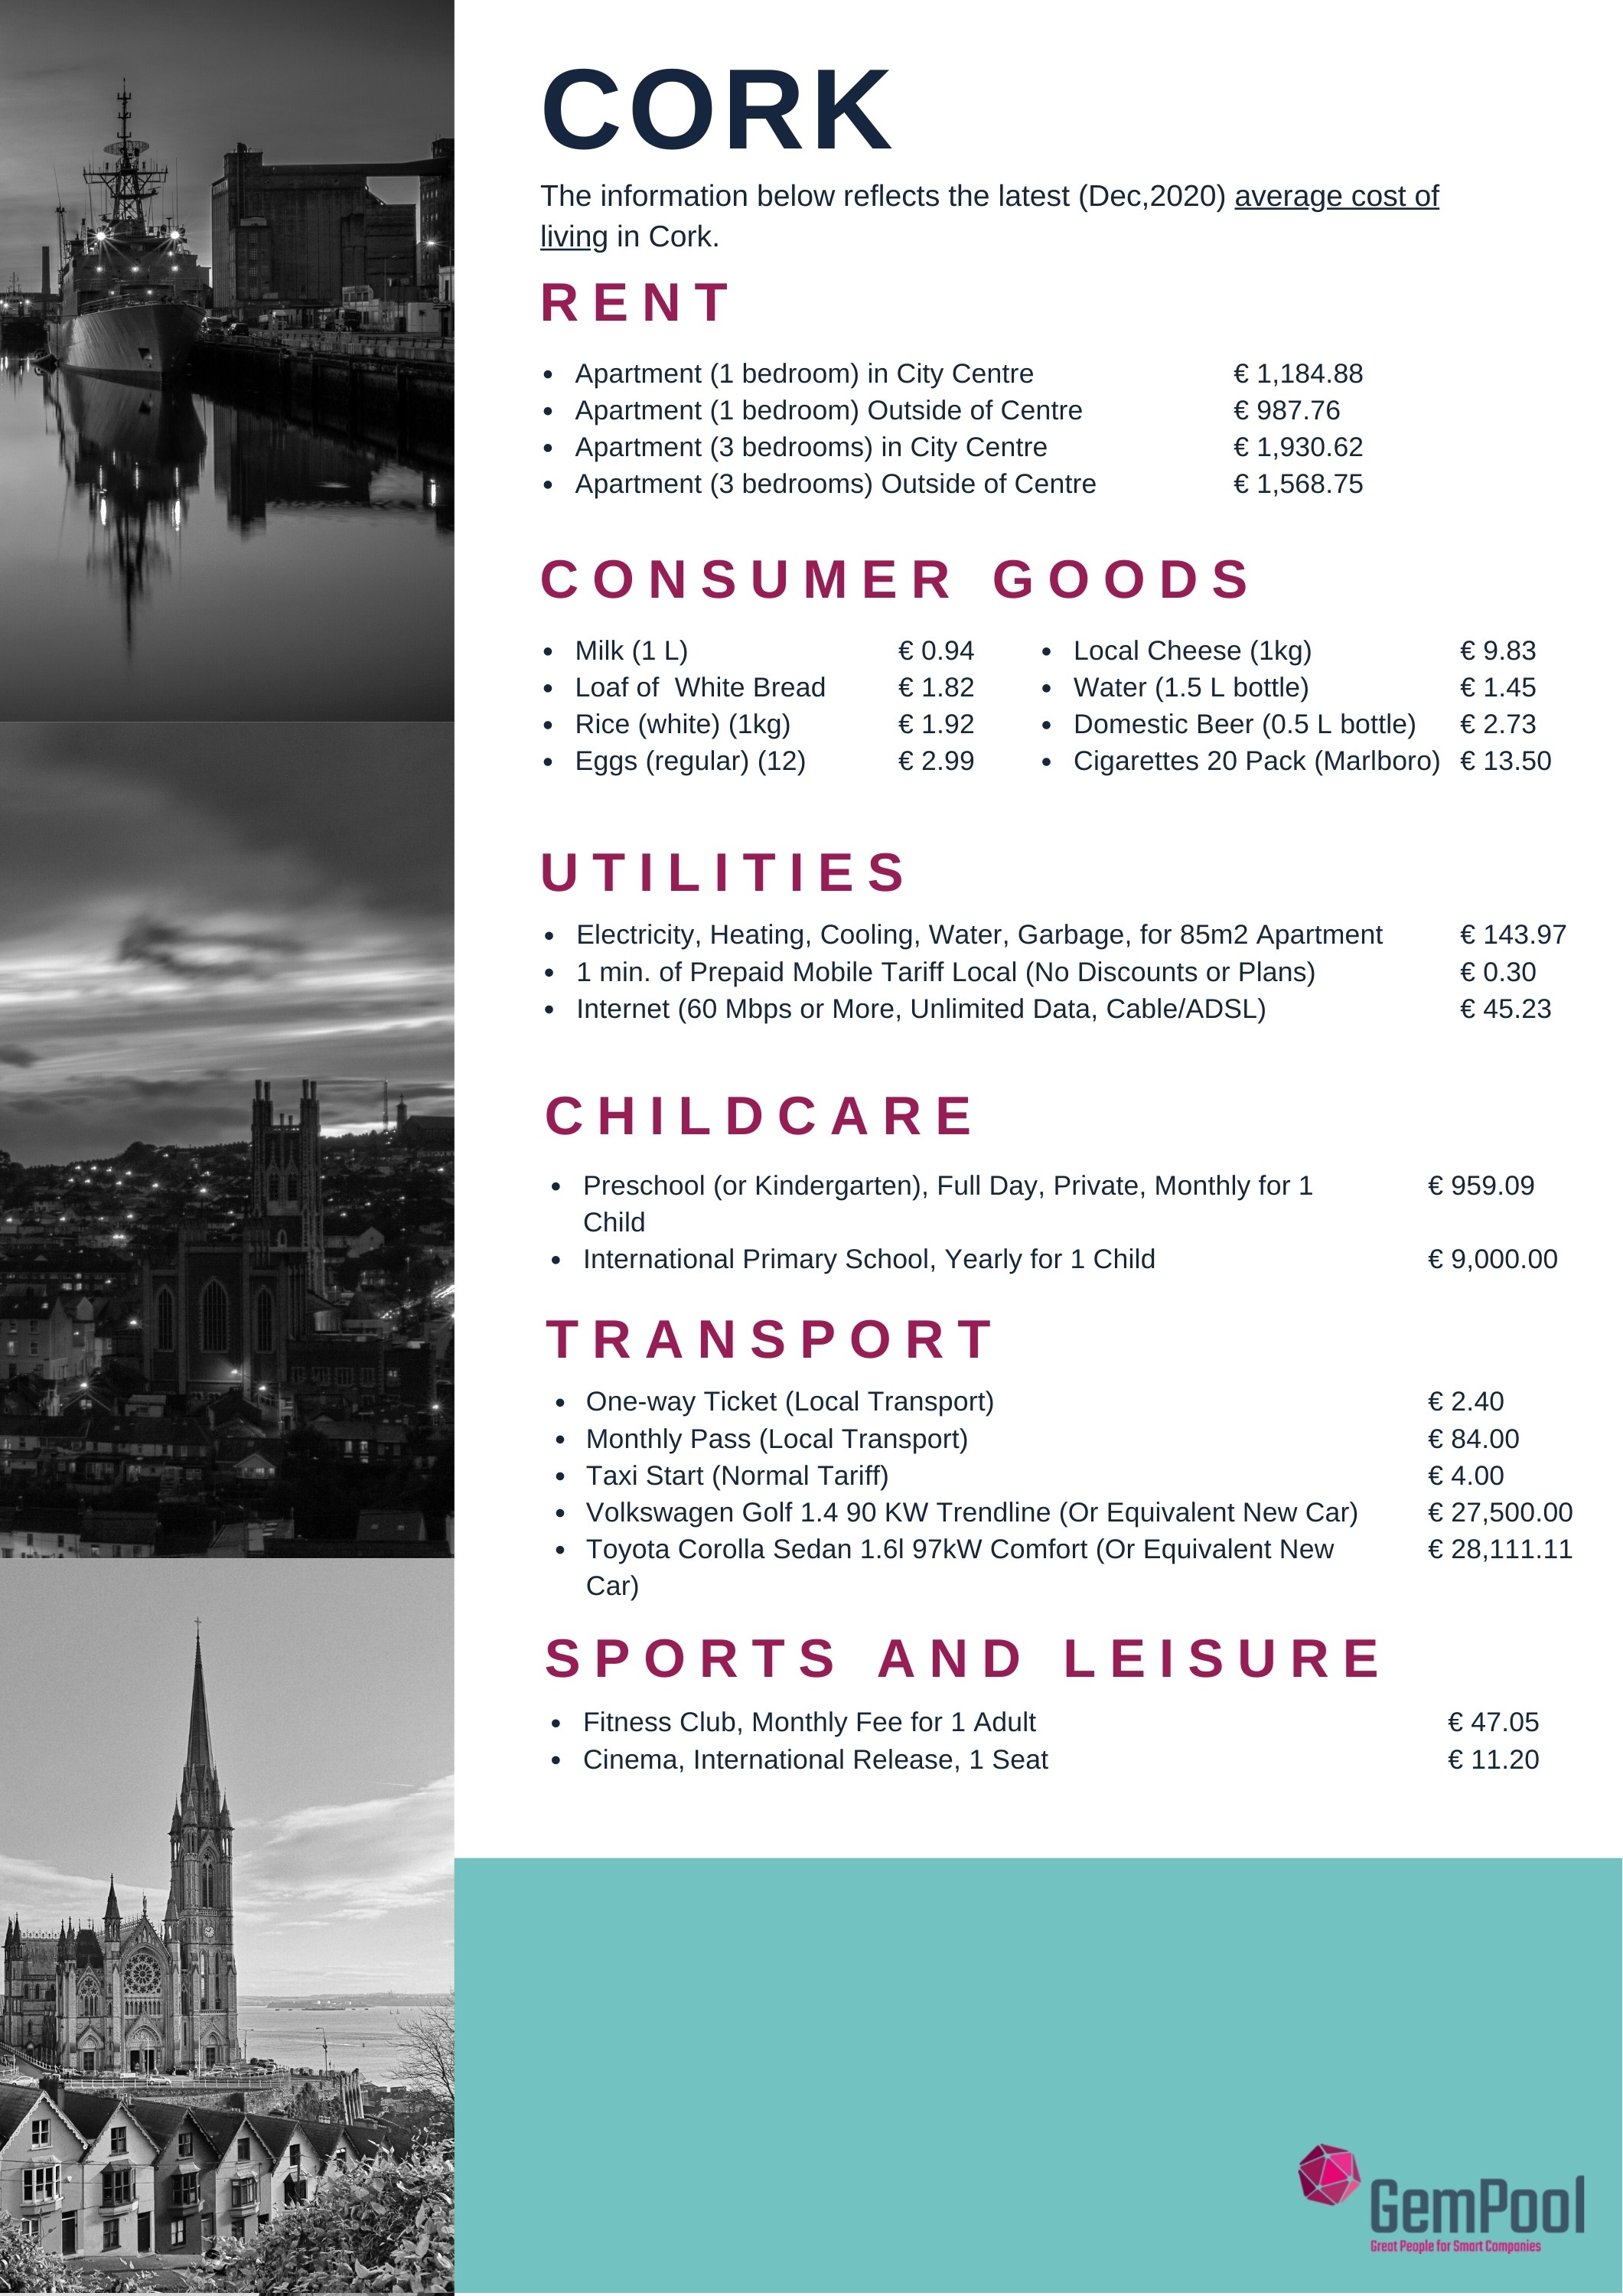 cost of living in Cork